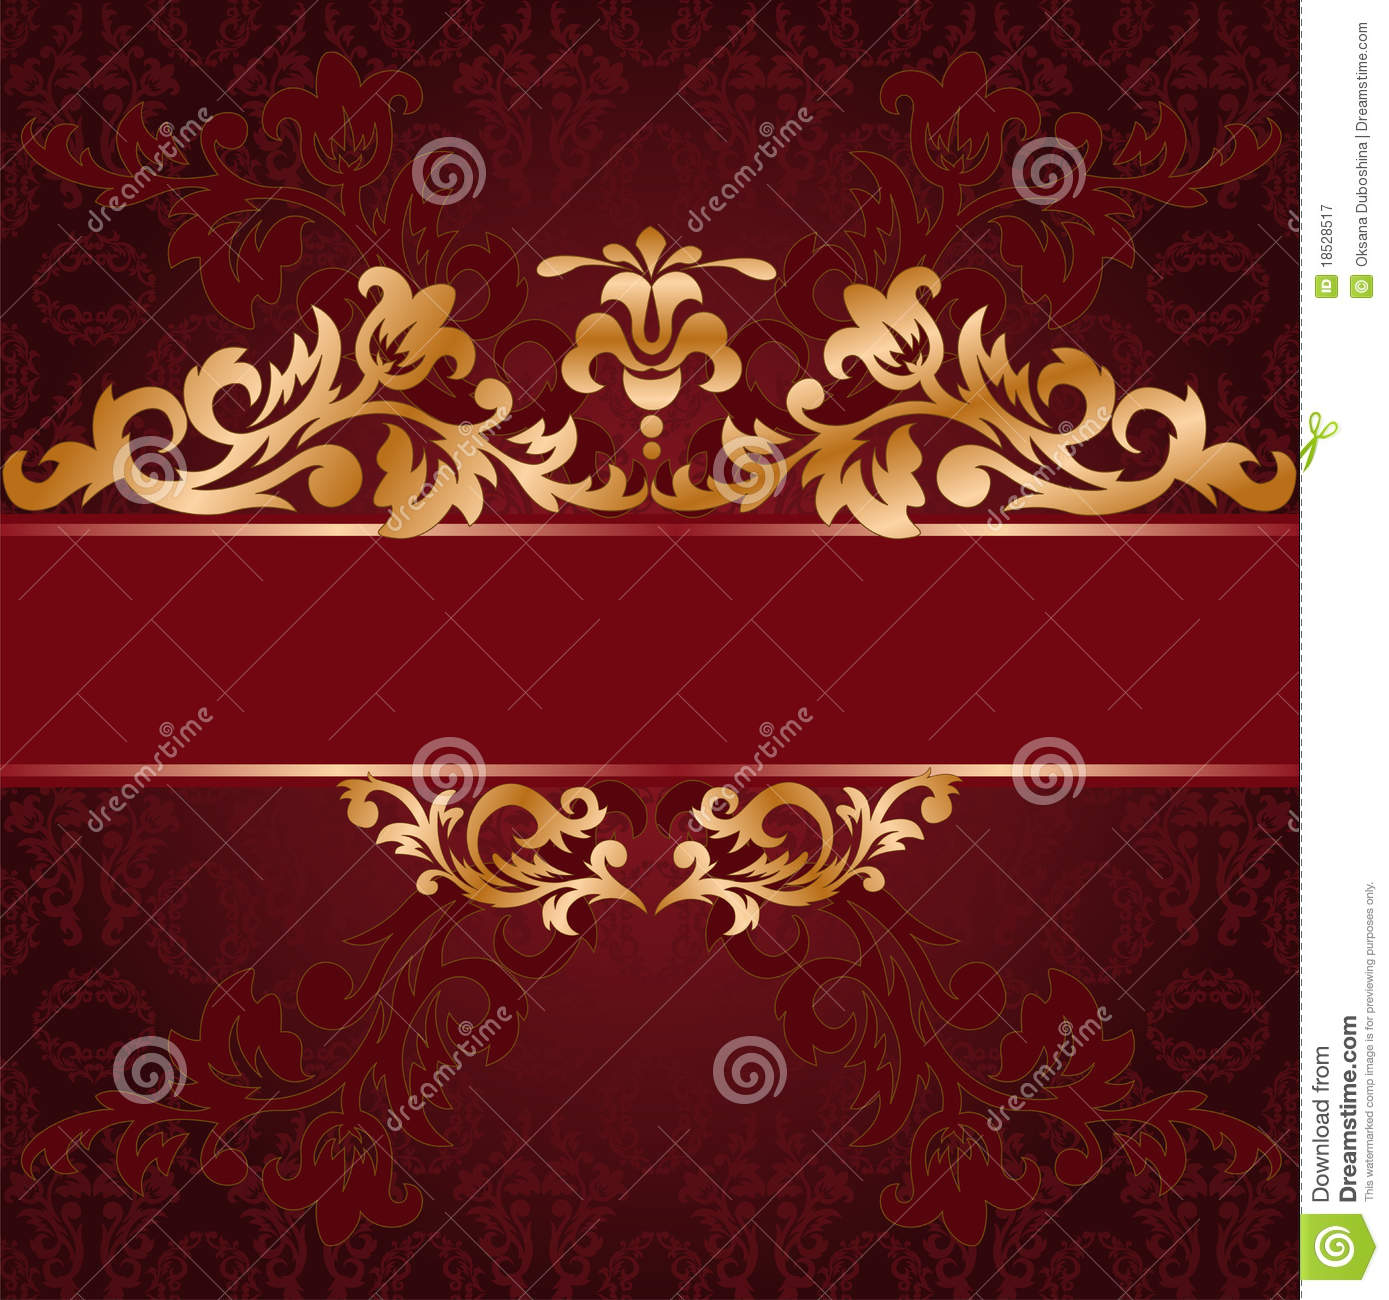 Red background with gold ornaments royalty free stock for Red with gold